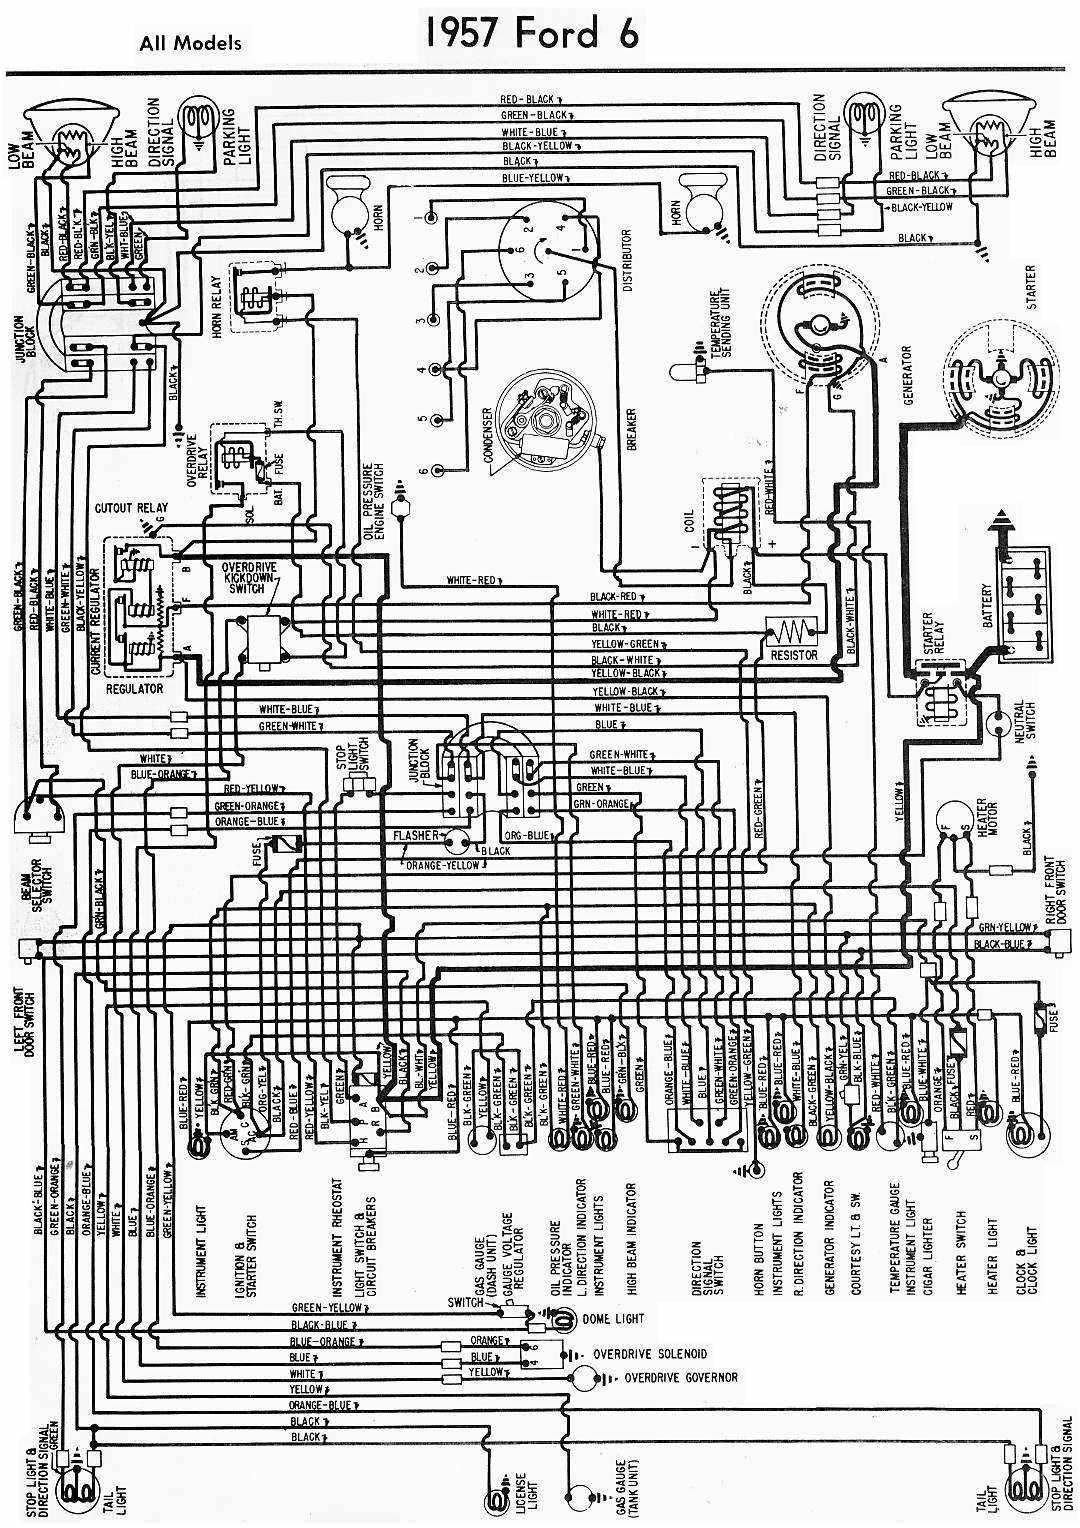 Ford Cylinder All Models Wiring Diagram on 1957 Ford Fairlane 300